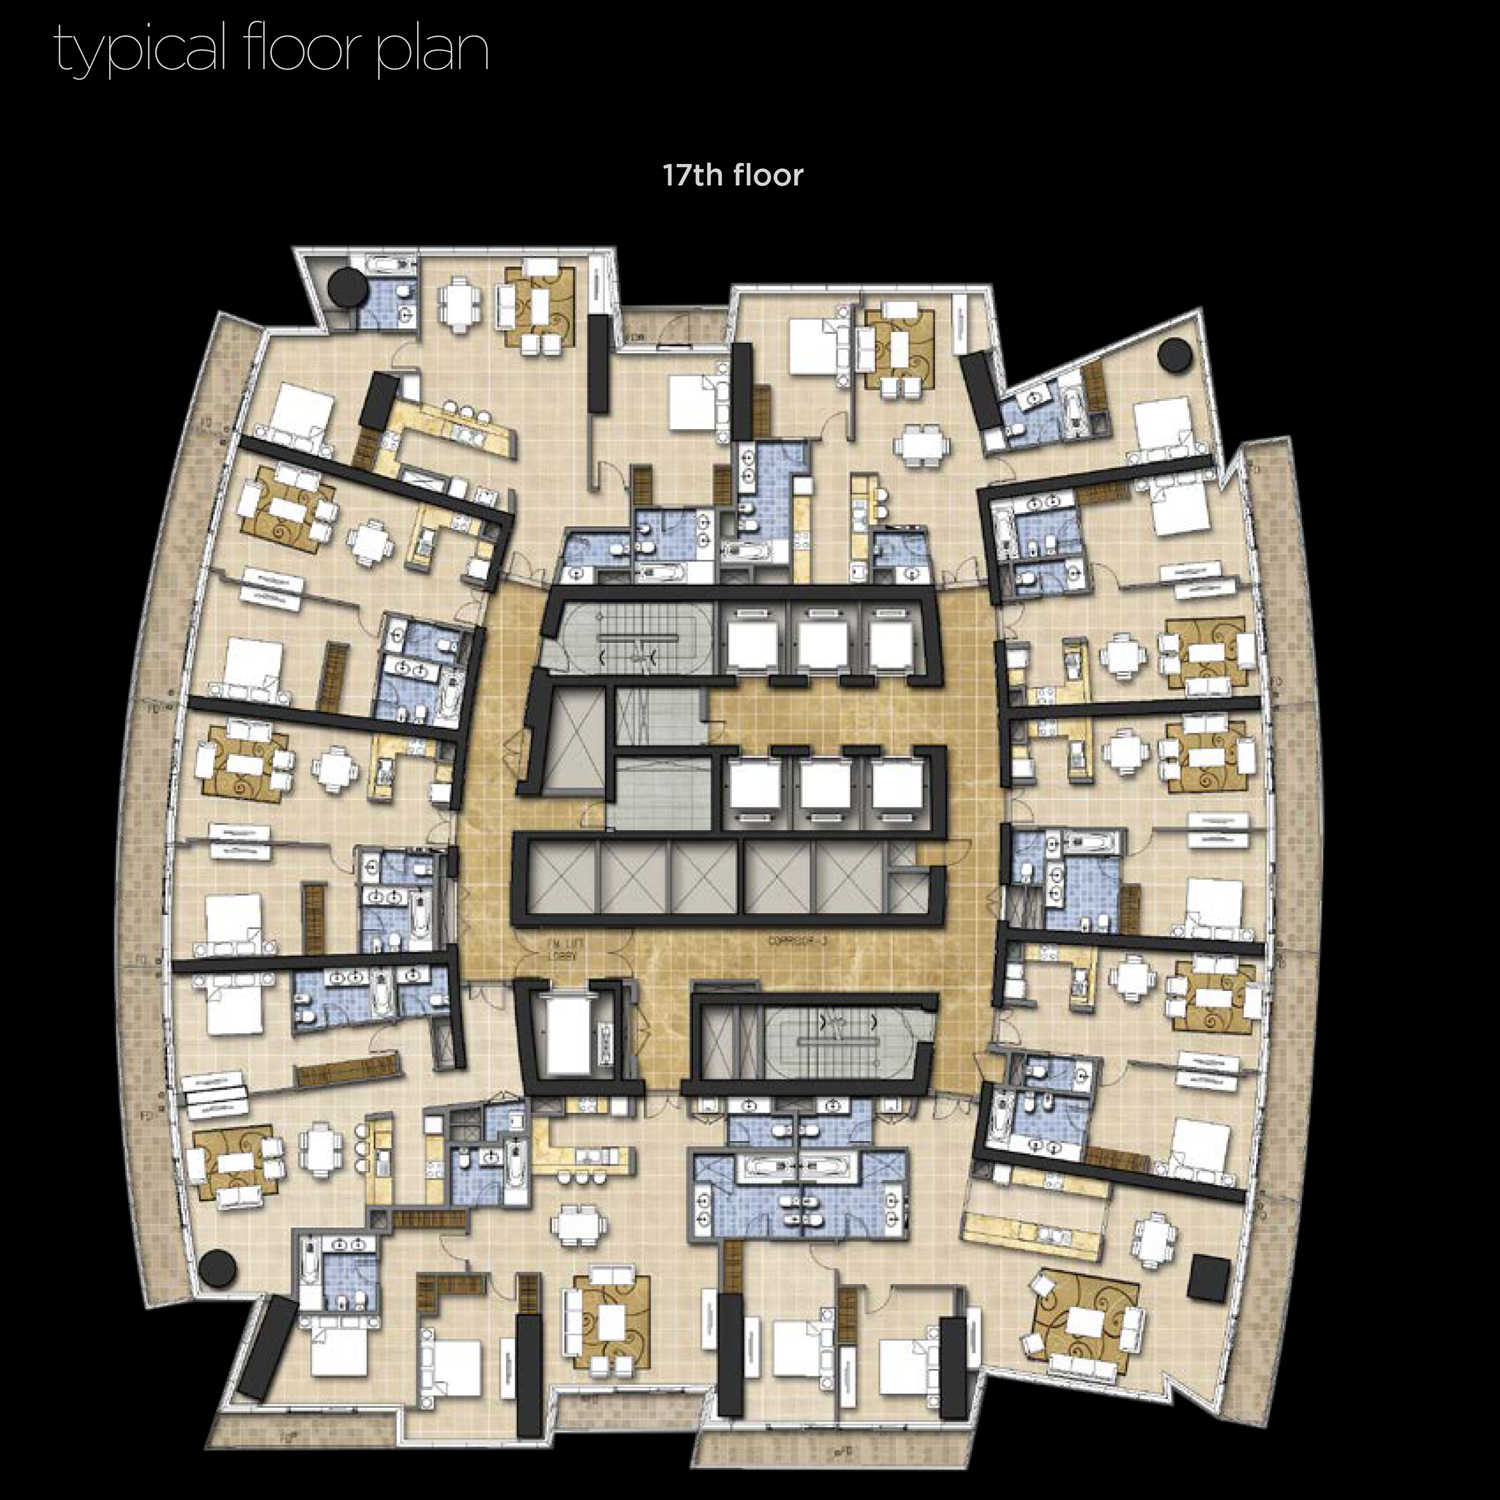 17th-Floor--Typical-Floor-Plan